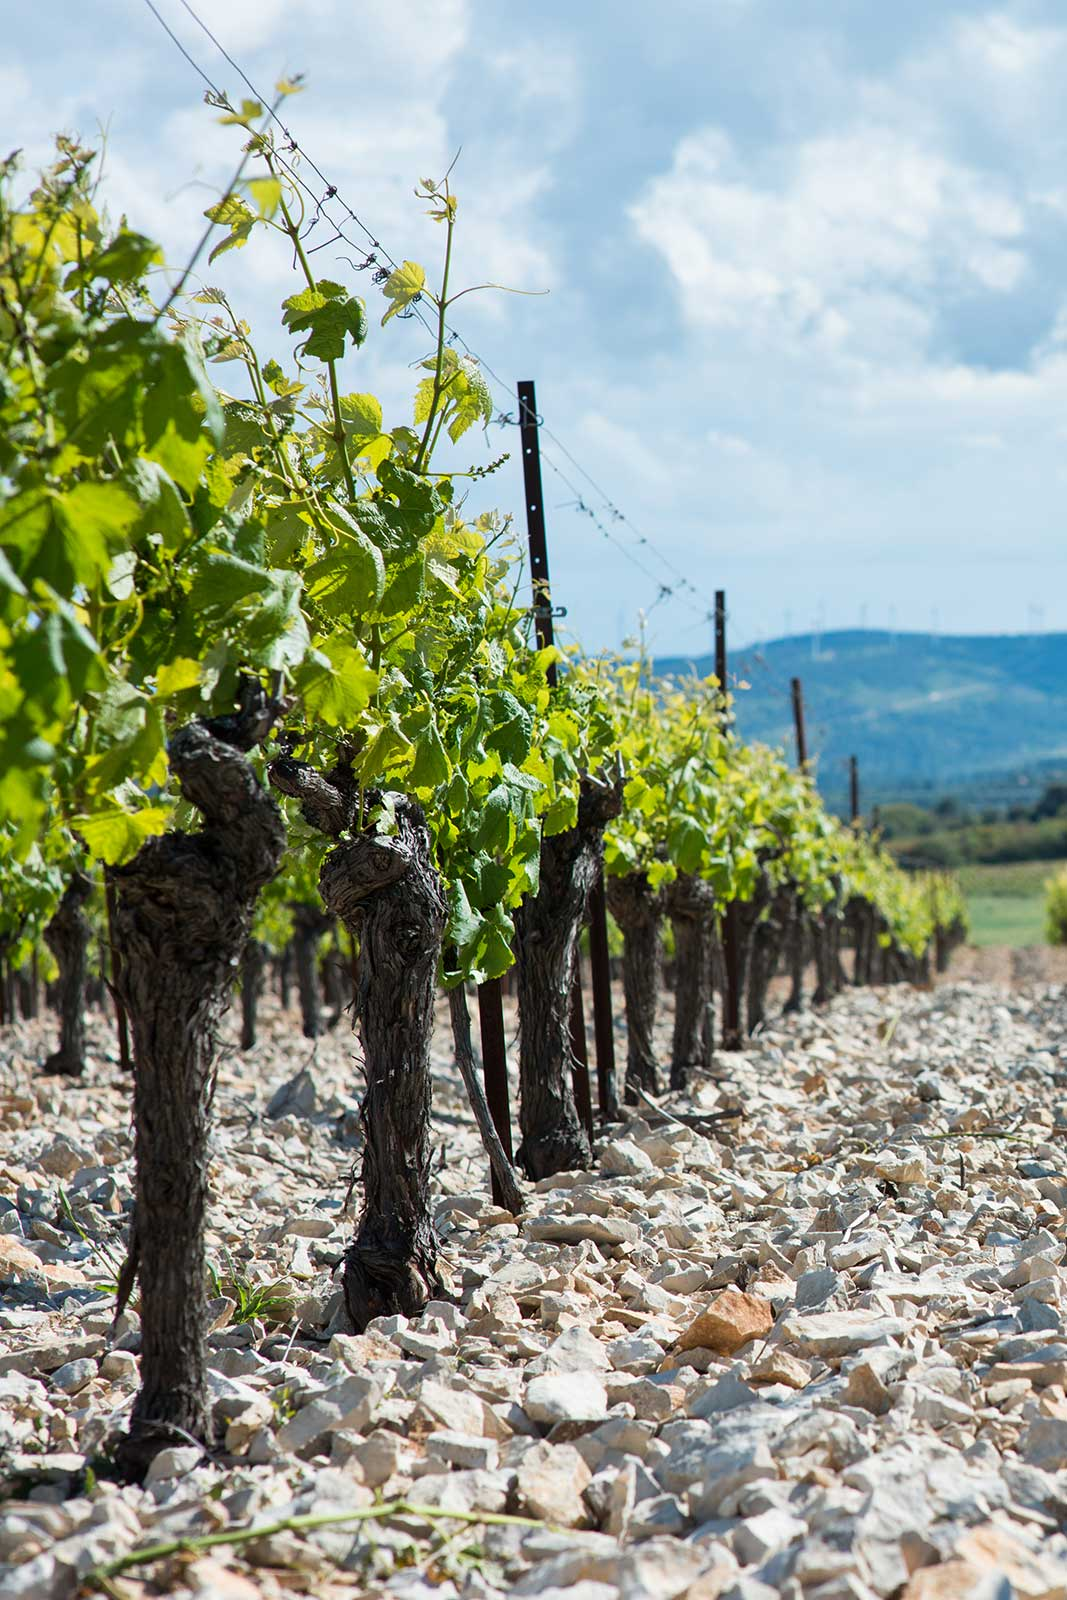 The old-vine vineyards of Domaine Anne Gros & Jean-Paul Tollot. ©Domaine Anne Gros & Jean-Paul Tollot